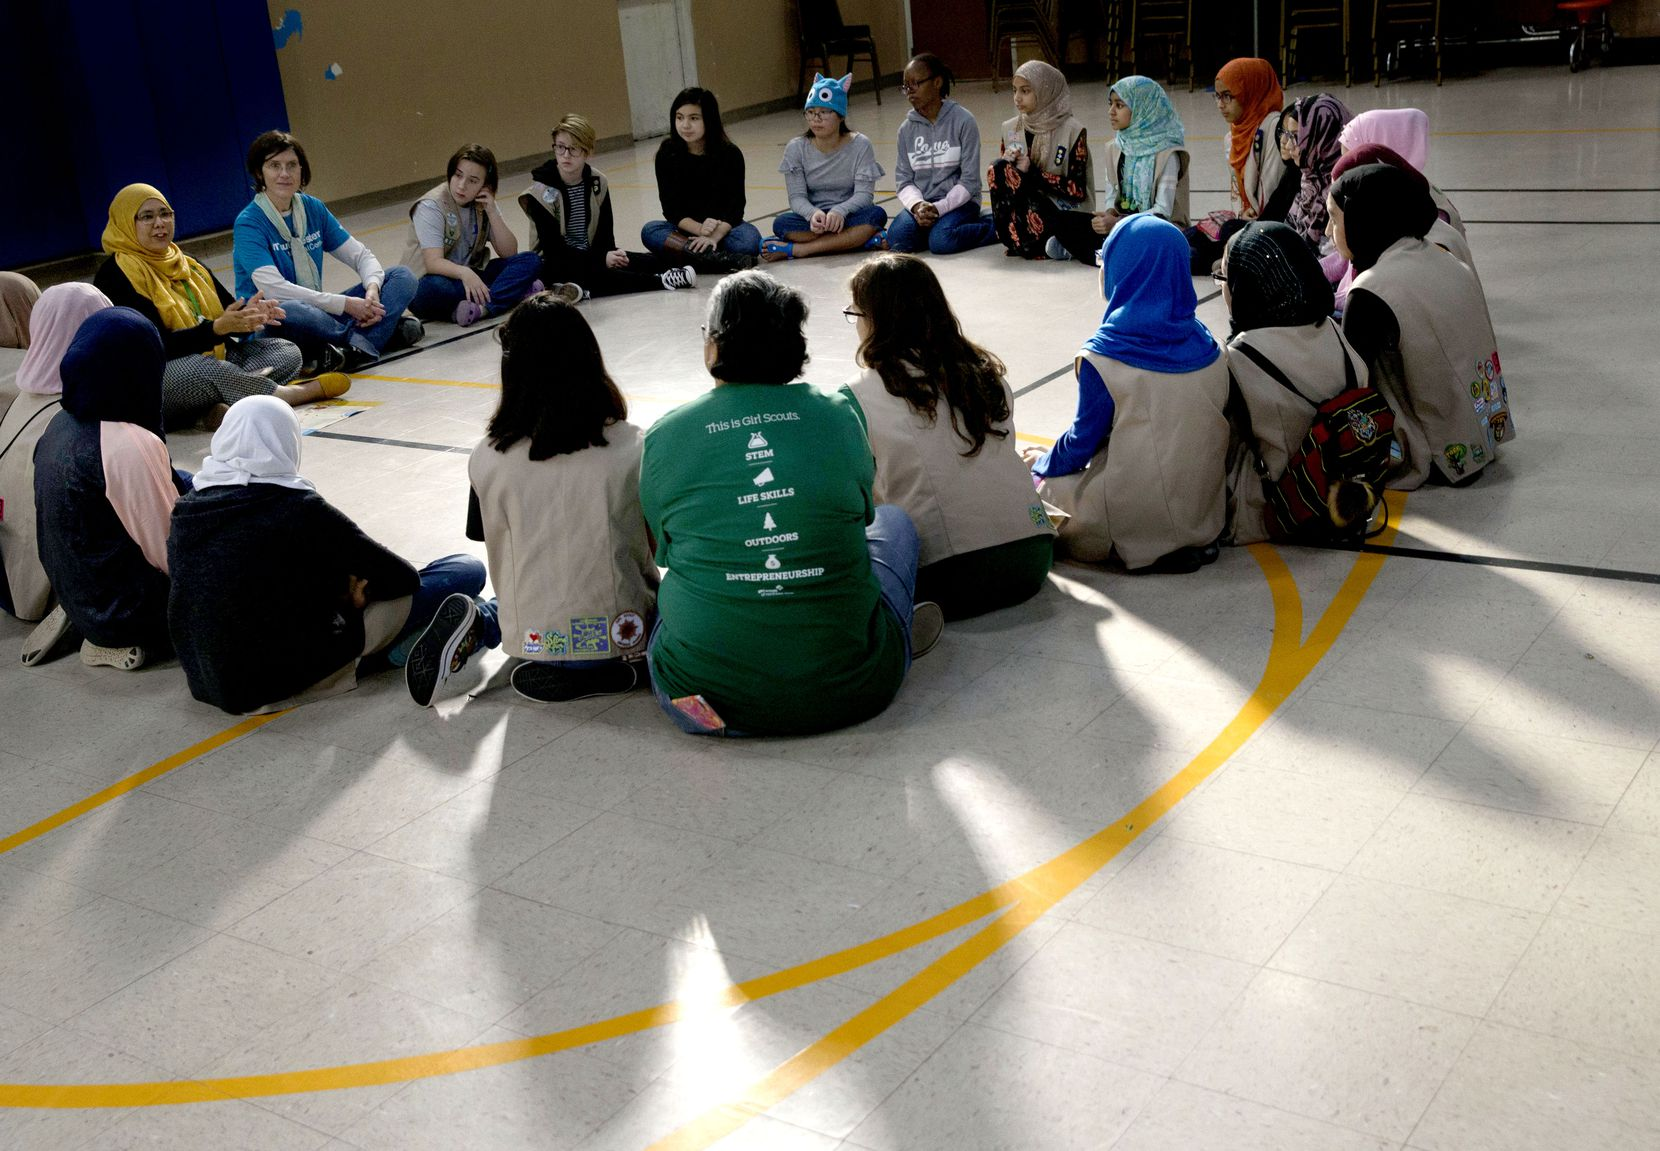 Girl Scouts from Troop 882 and Troop 5309 (both non-Muslim), and Troop 647, a Muslim troop, listen to Troop 647 leader Sharmina Zaidi, far left in yellow, as they begin their combined meeting at the Islamic Association of North Texas mosque in Richardson, Texas on Saturday, November 3, 2018.